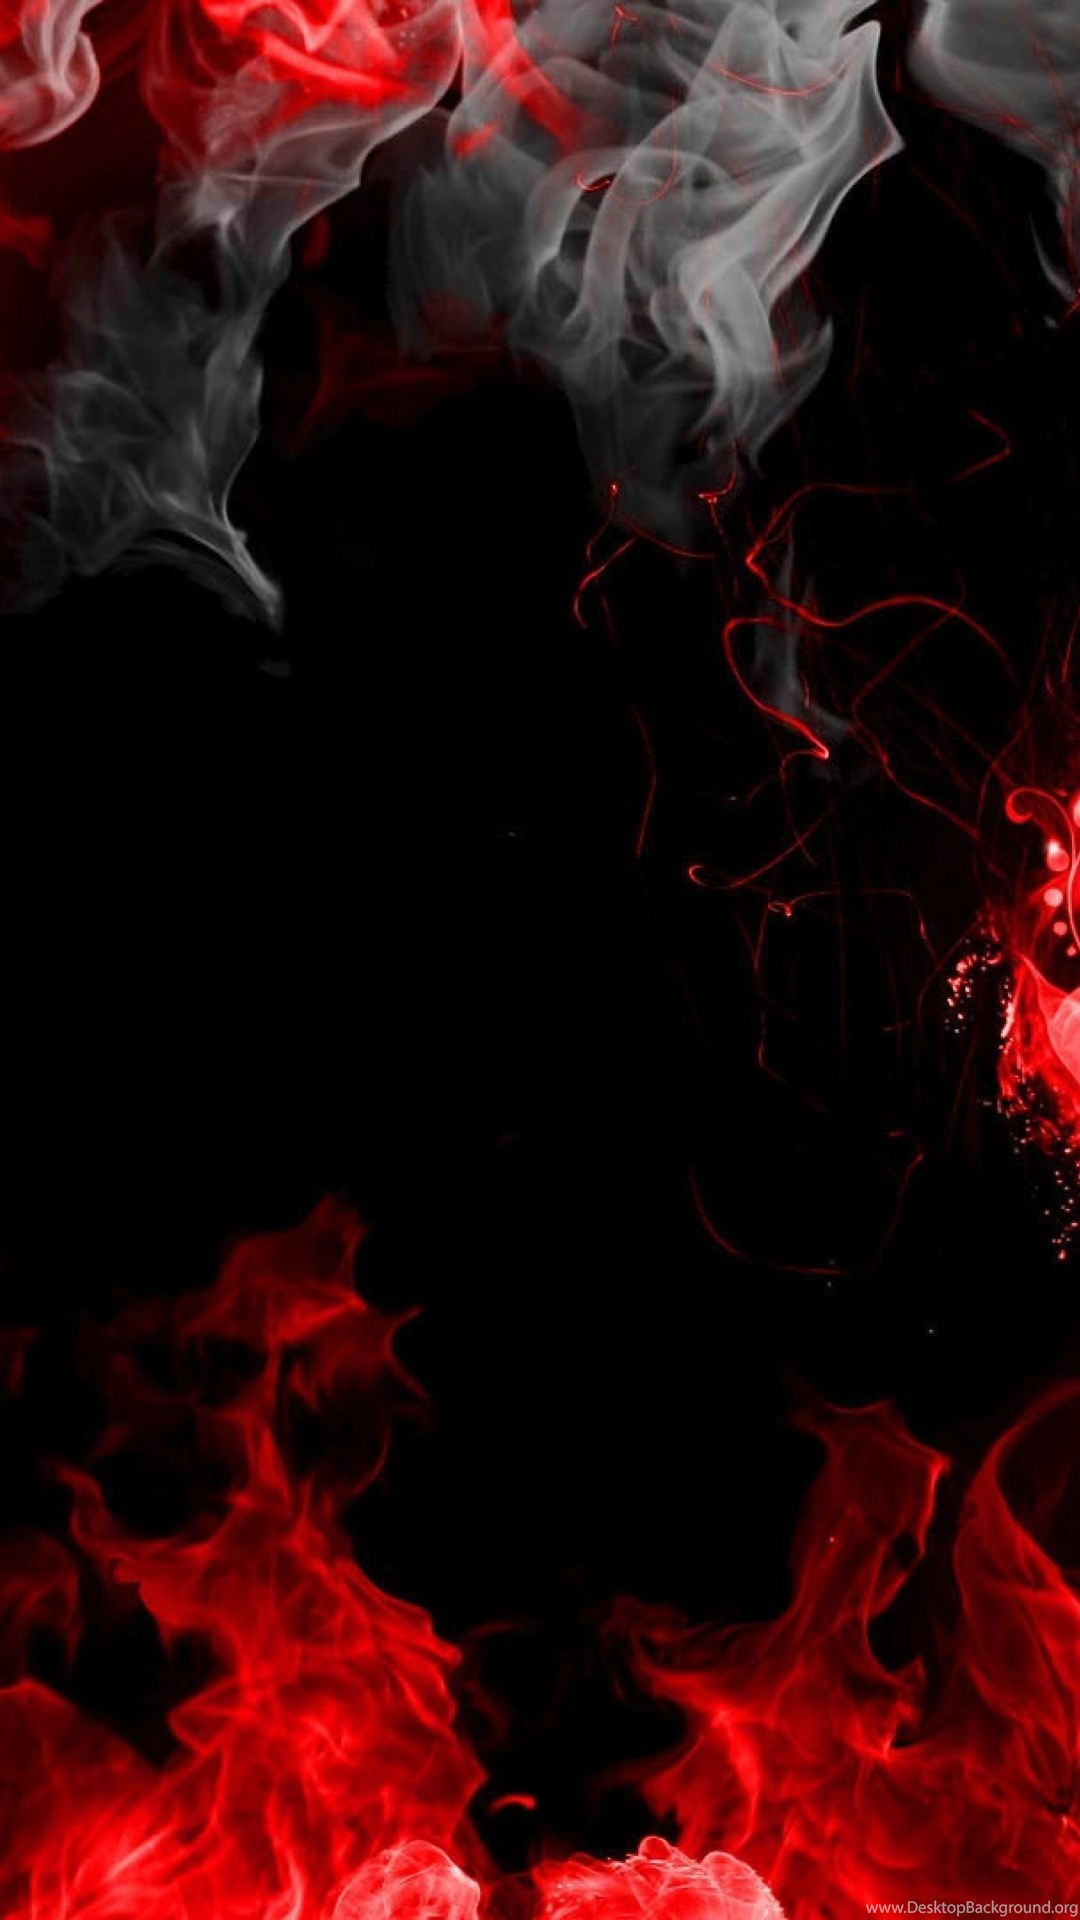 Black And Red Wallpaper 4k For Mobile Unixpaint Black And Green Wallpaper Iphone 1080x1920 Wallpaper Teahub Io